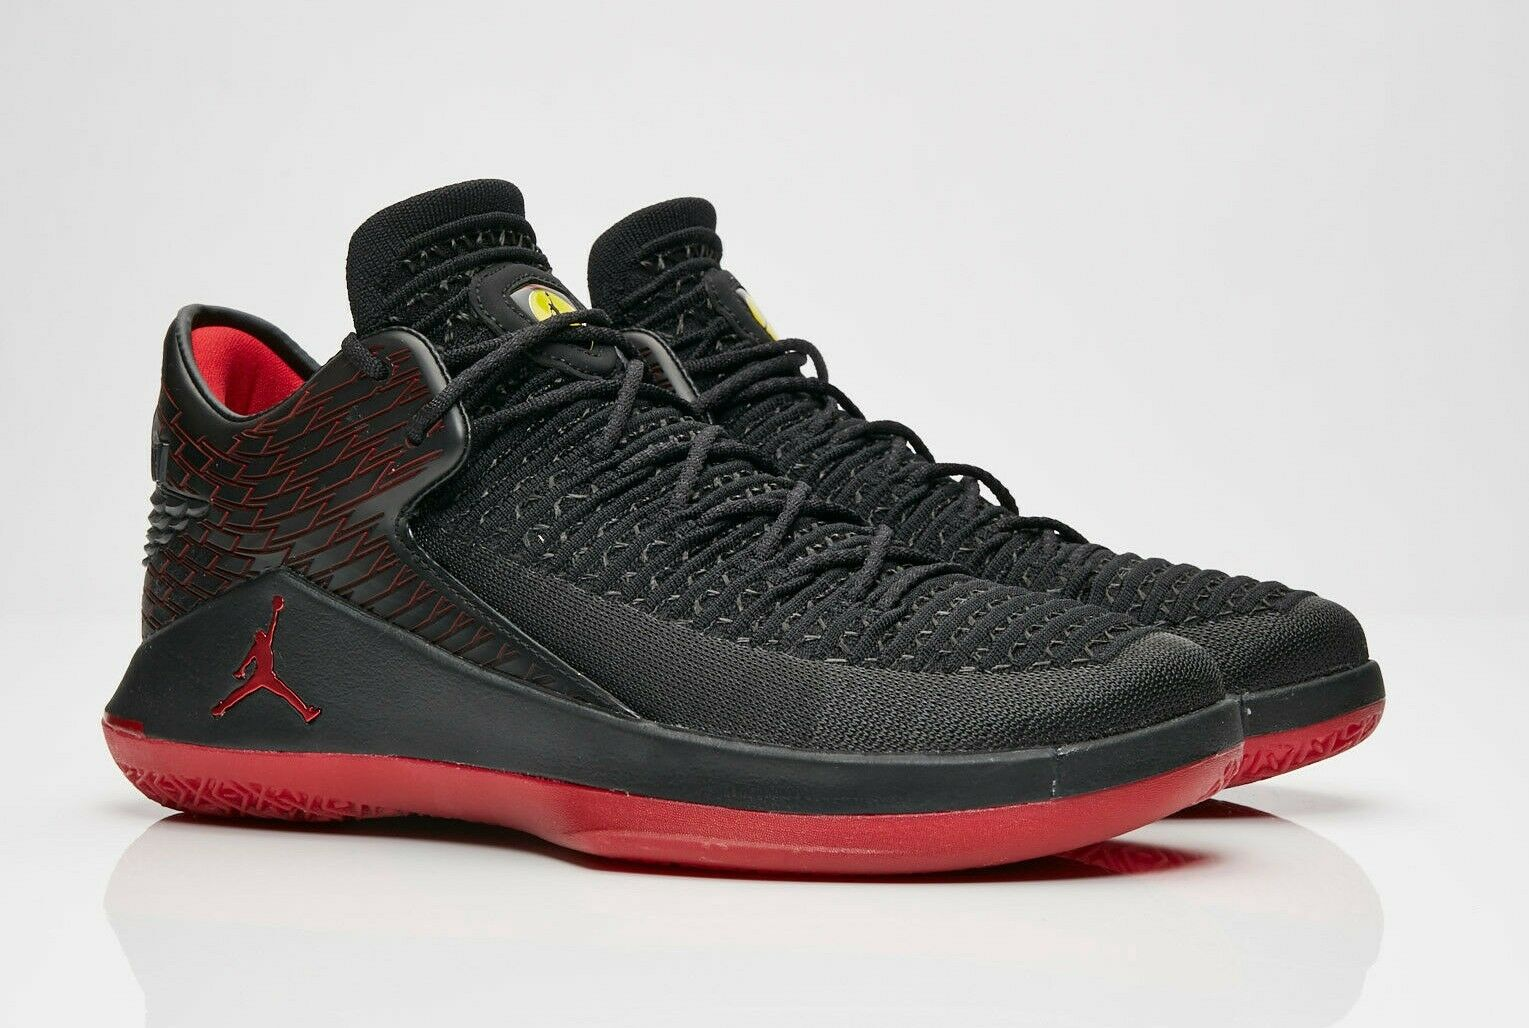 accaa245dc46 Nike Air Jordan XXXII 32 Low Last Shot Basketball Shoes Size 13 Aa1256-003  for sale online